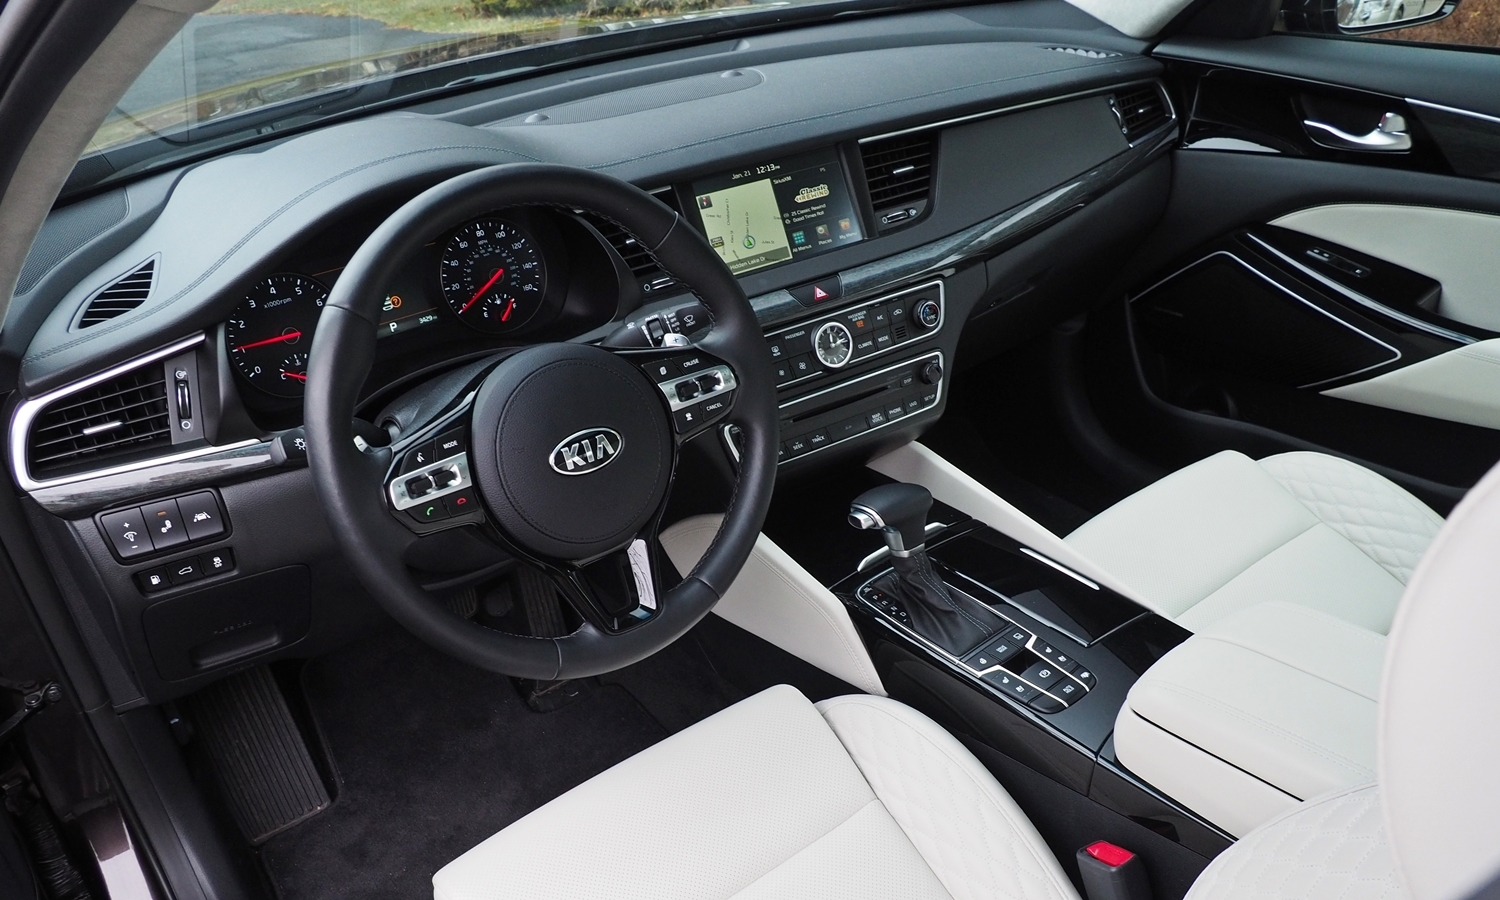 Cadenza Reviews: 2017 Kia Cadenza interior